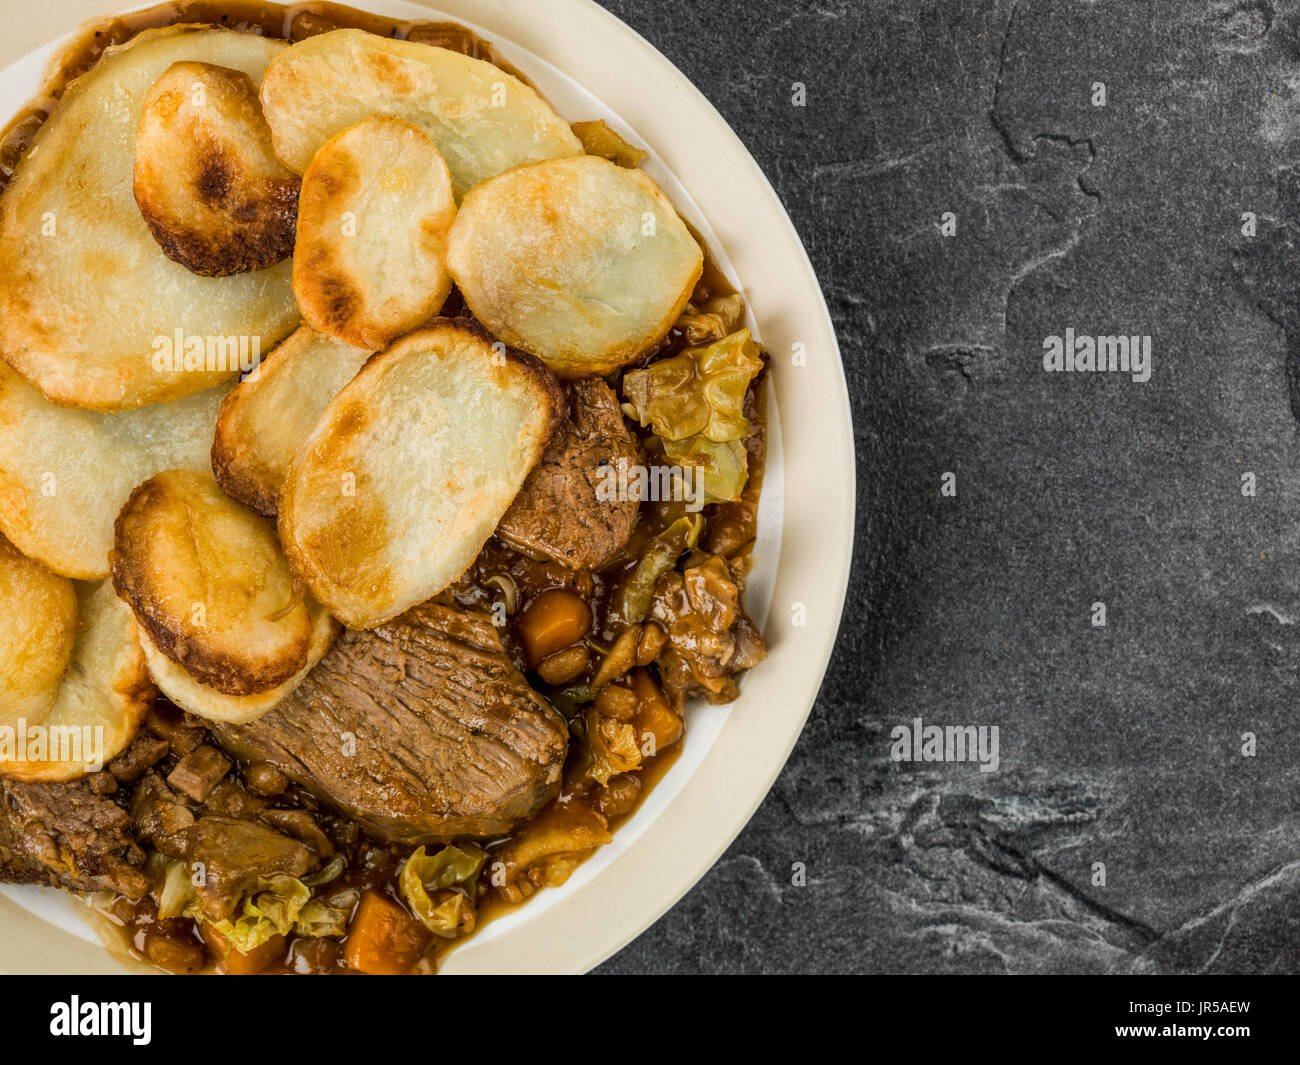 Lamb Hotpot With Sliced Potatoes and Onion Gravy Against a B;ack Slate Tile Background - Stock Image